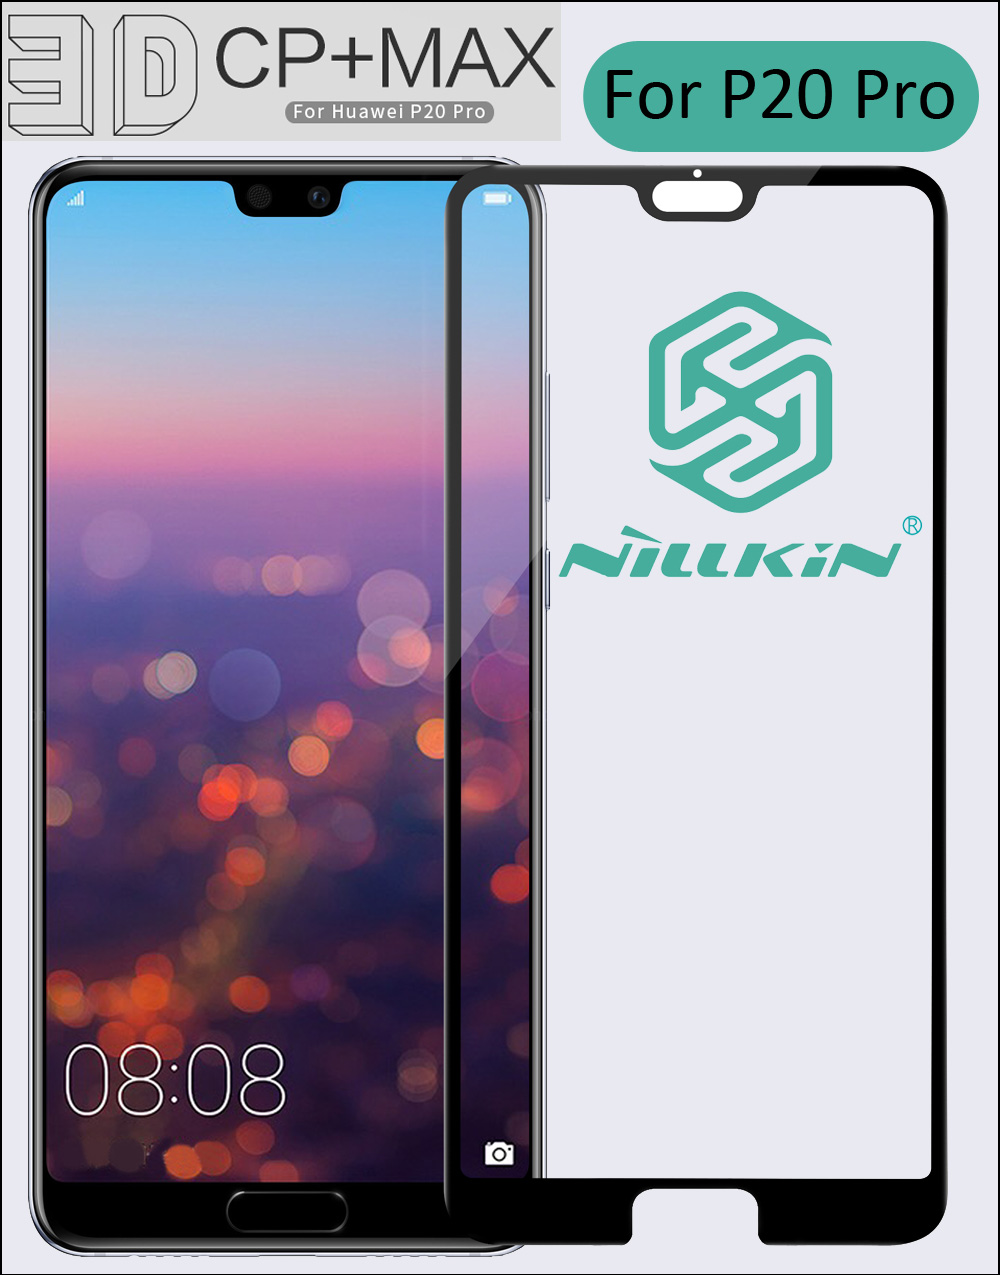 Nillkin 3D CP+ Max Tempered Glass For Huawei P20 Pro Full Screen Cover Protective oleophobic